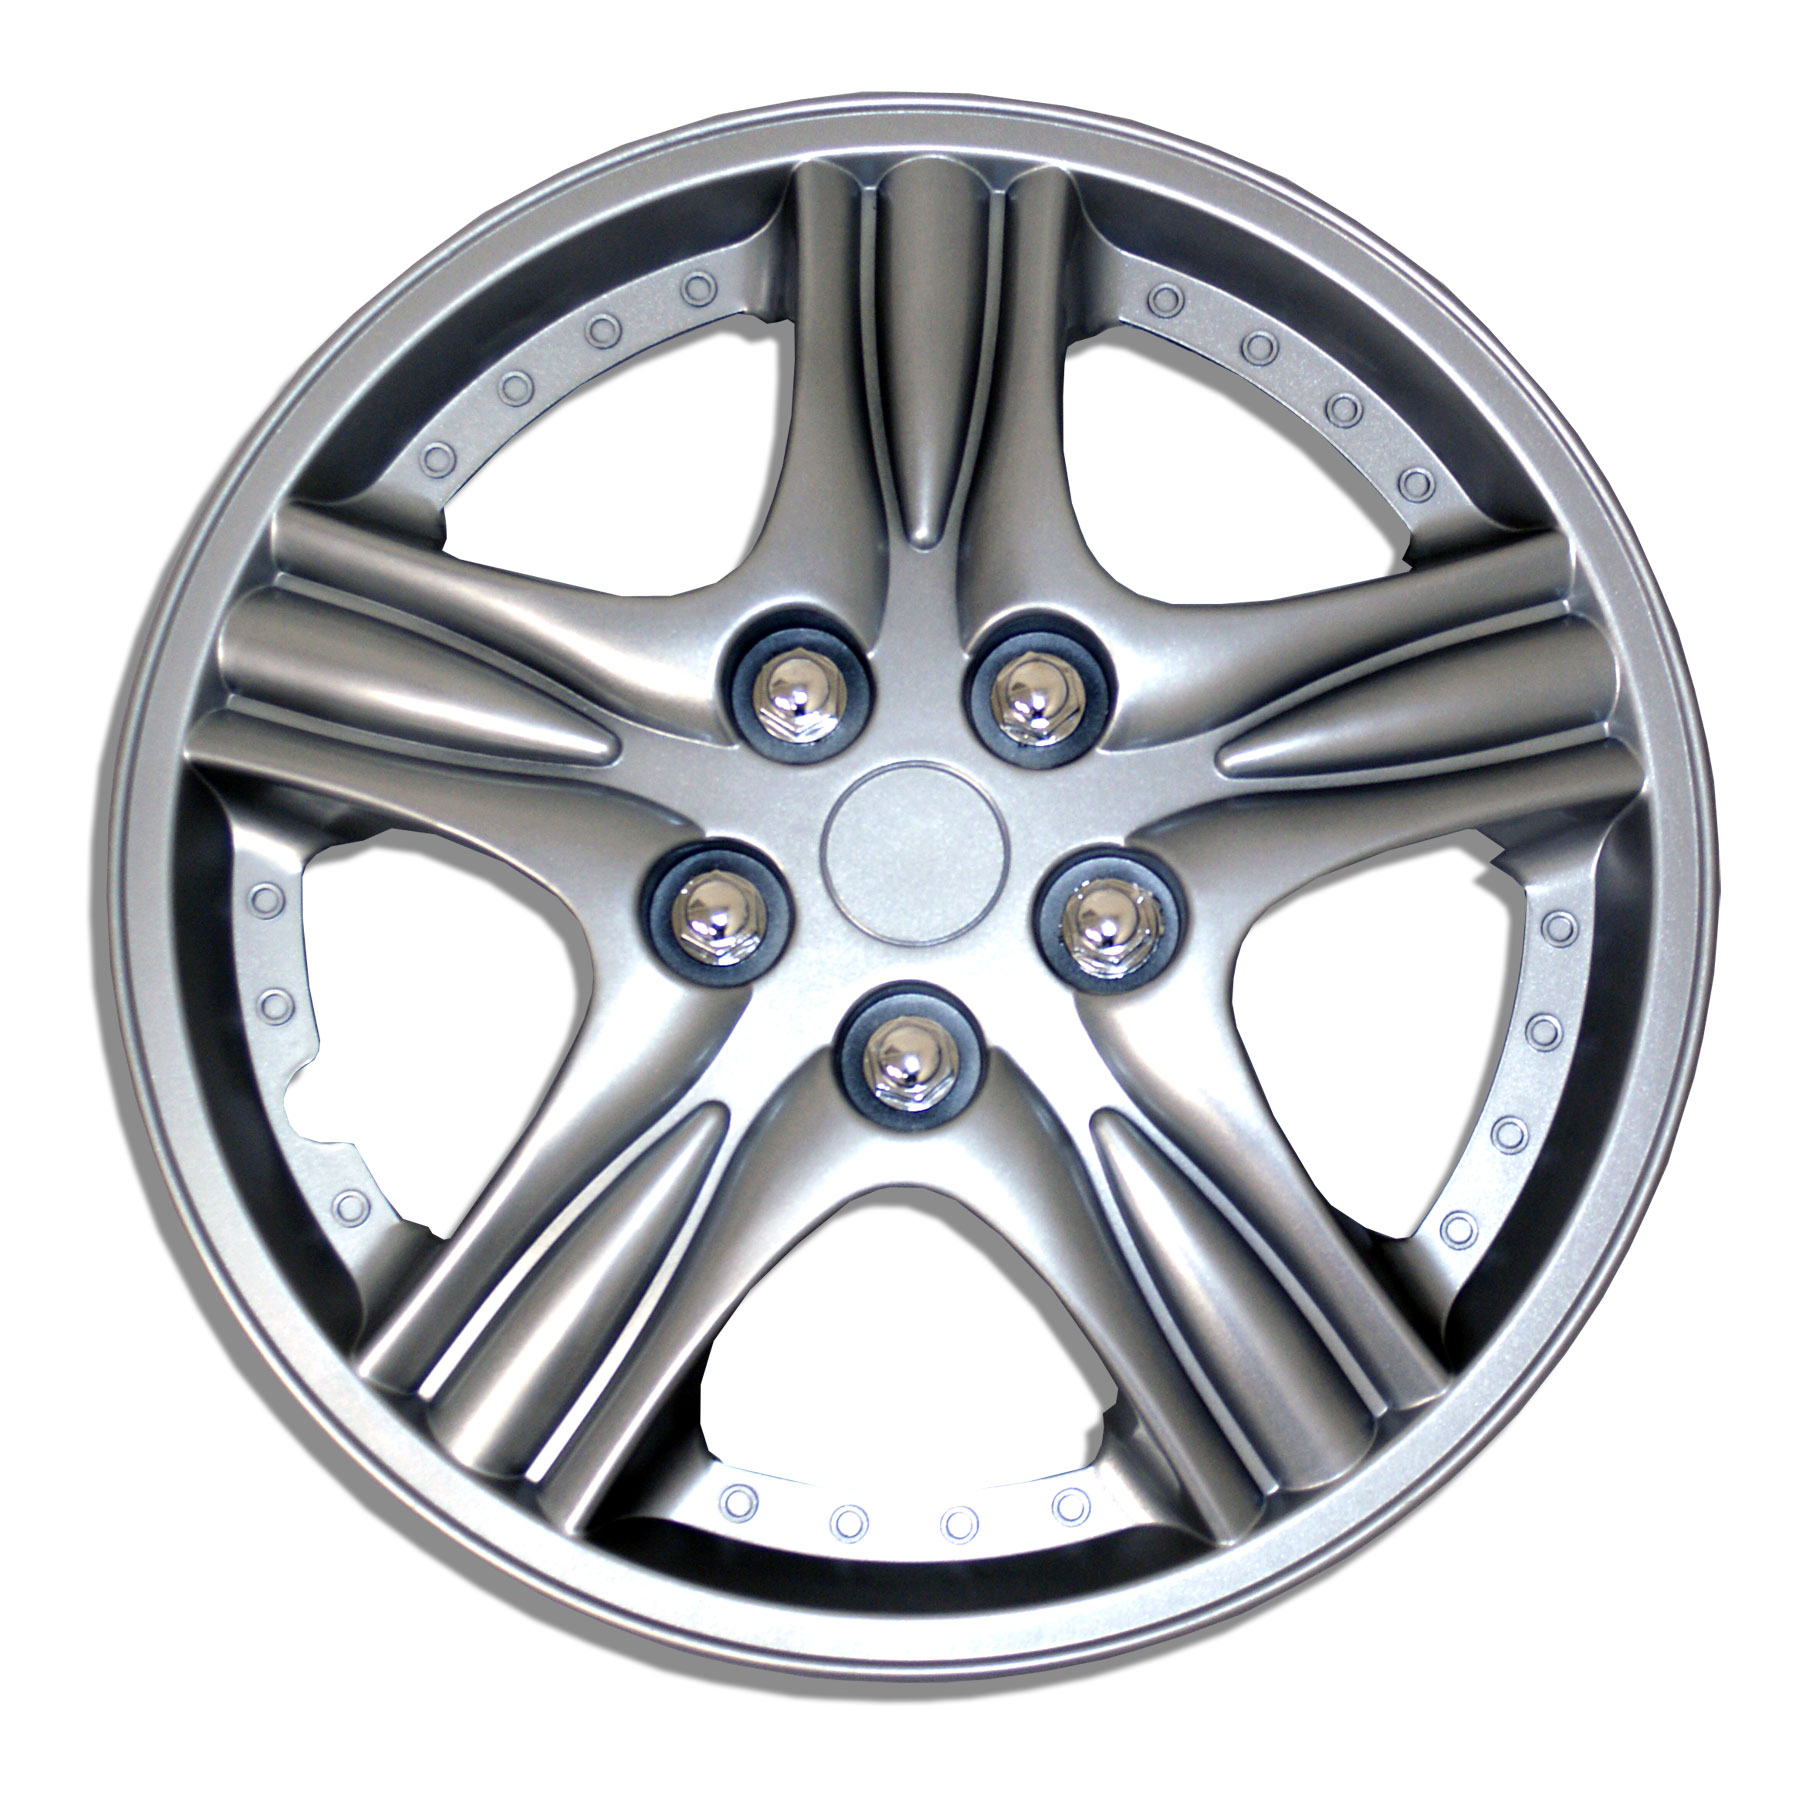 TuningPros WSC-523S15 Hubcaps Wheel Skin Cover 15-Inches Silver Set of 4